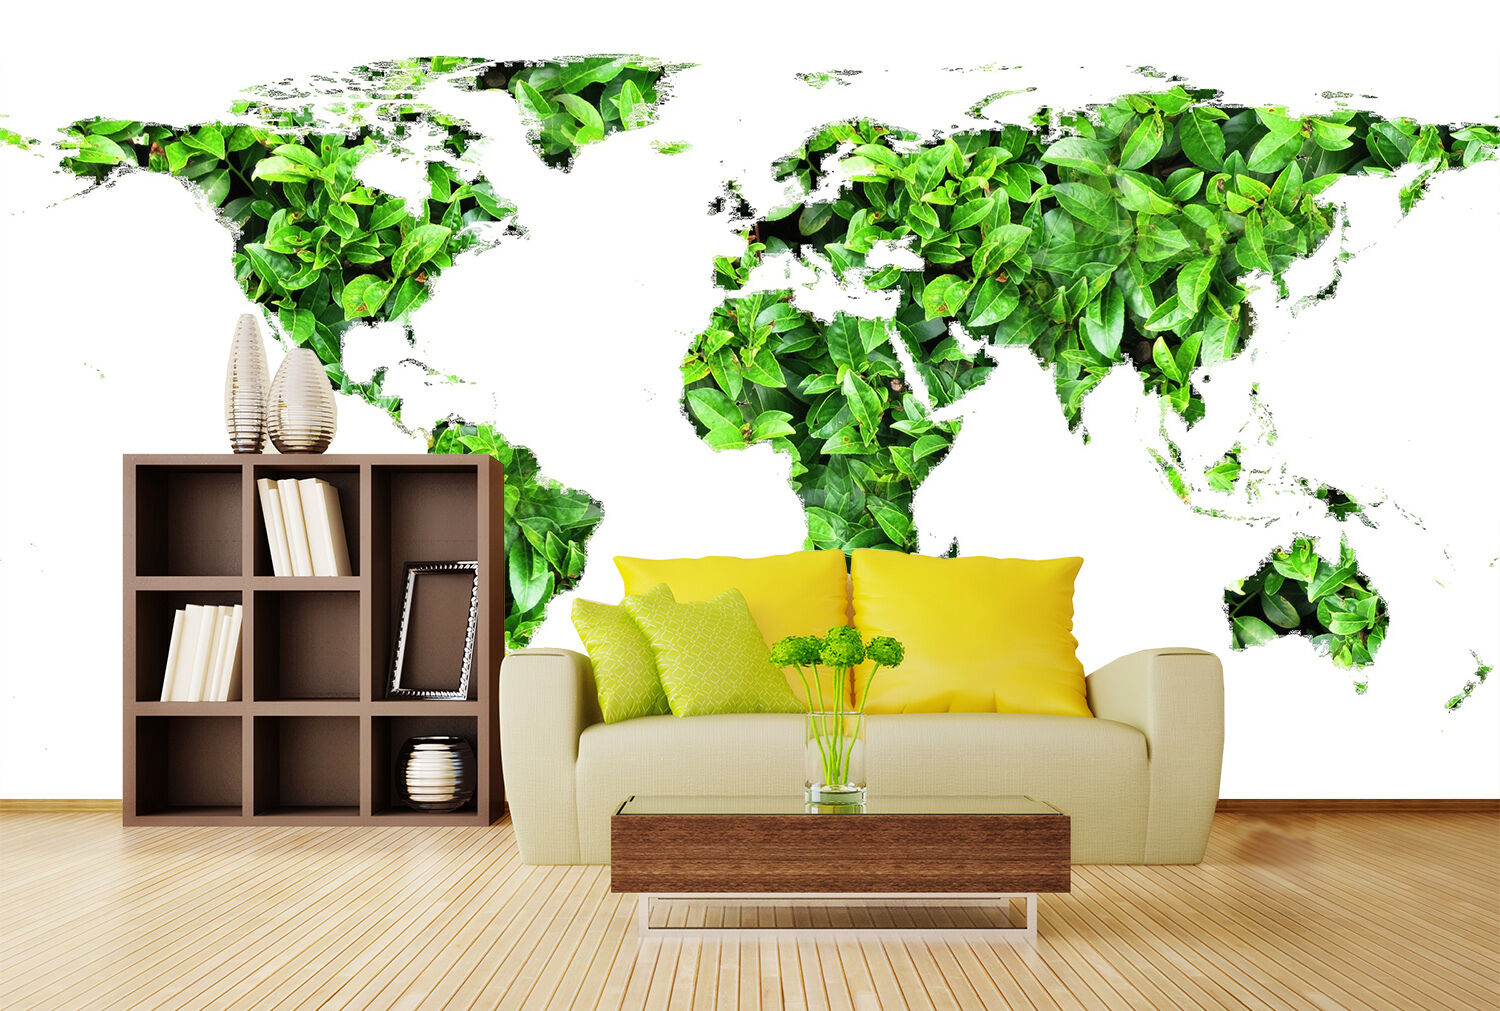 3D Green Plants Map 918 Wall Paper Wall Print Decal Wall Deco Indoor Wall